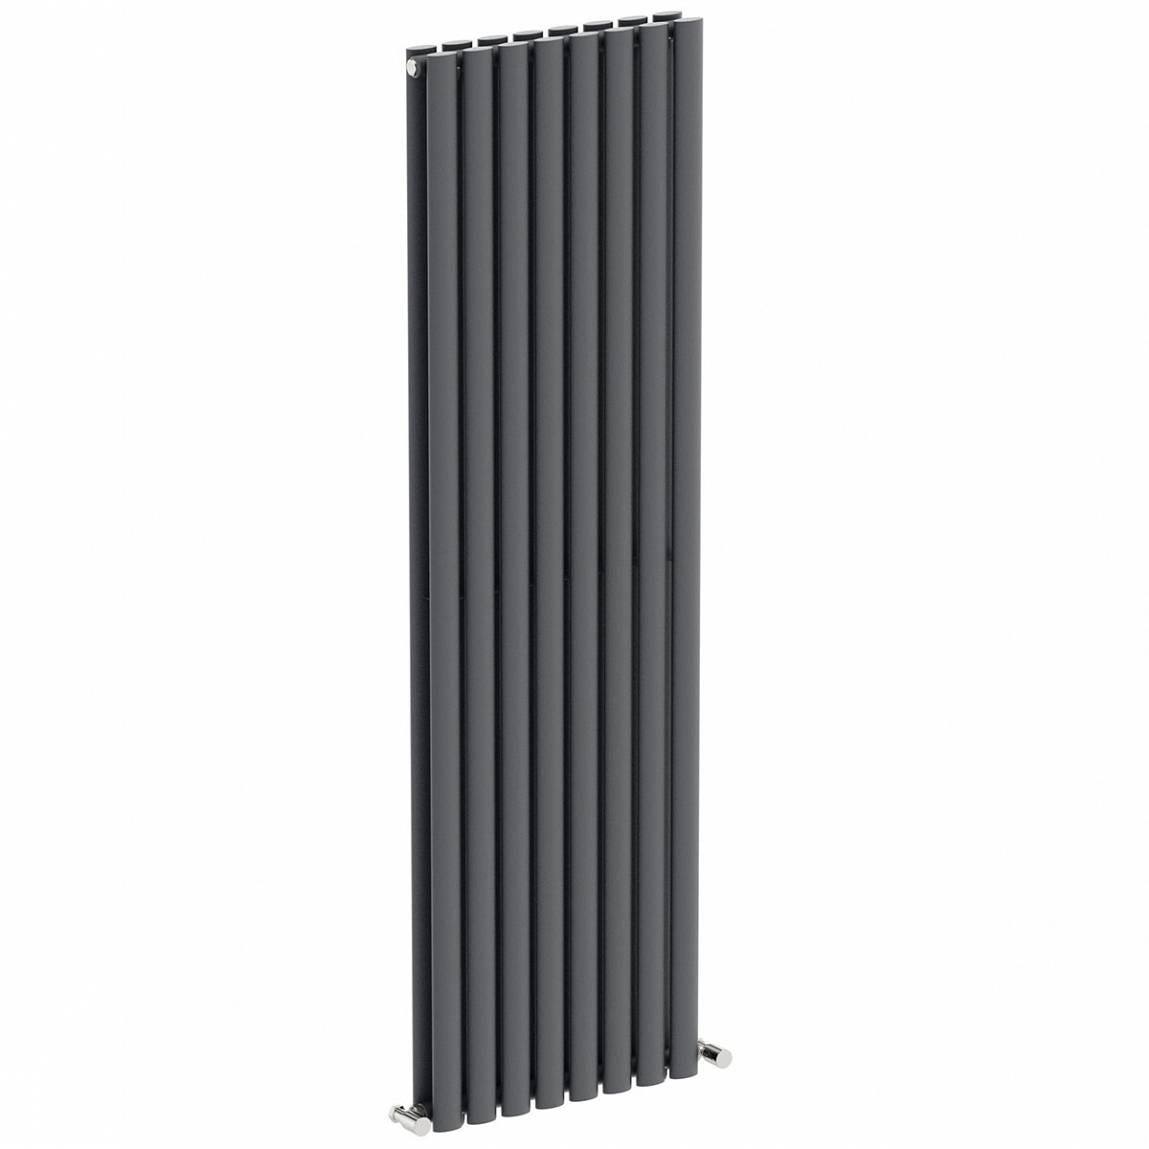 Image of Lava double vertical radiator 1600 x 480